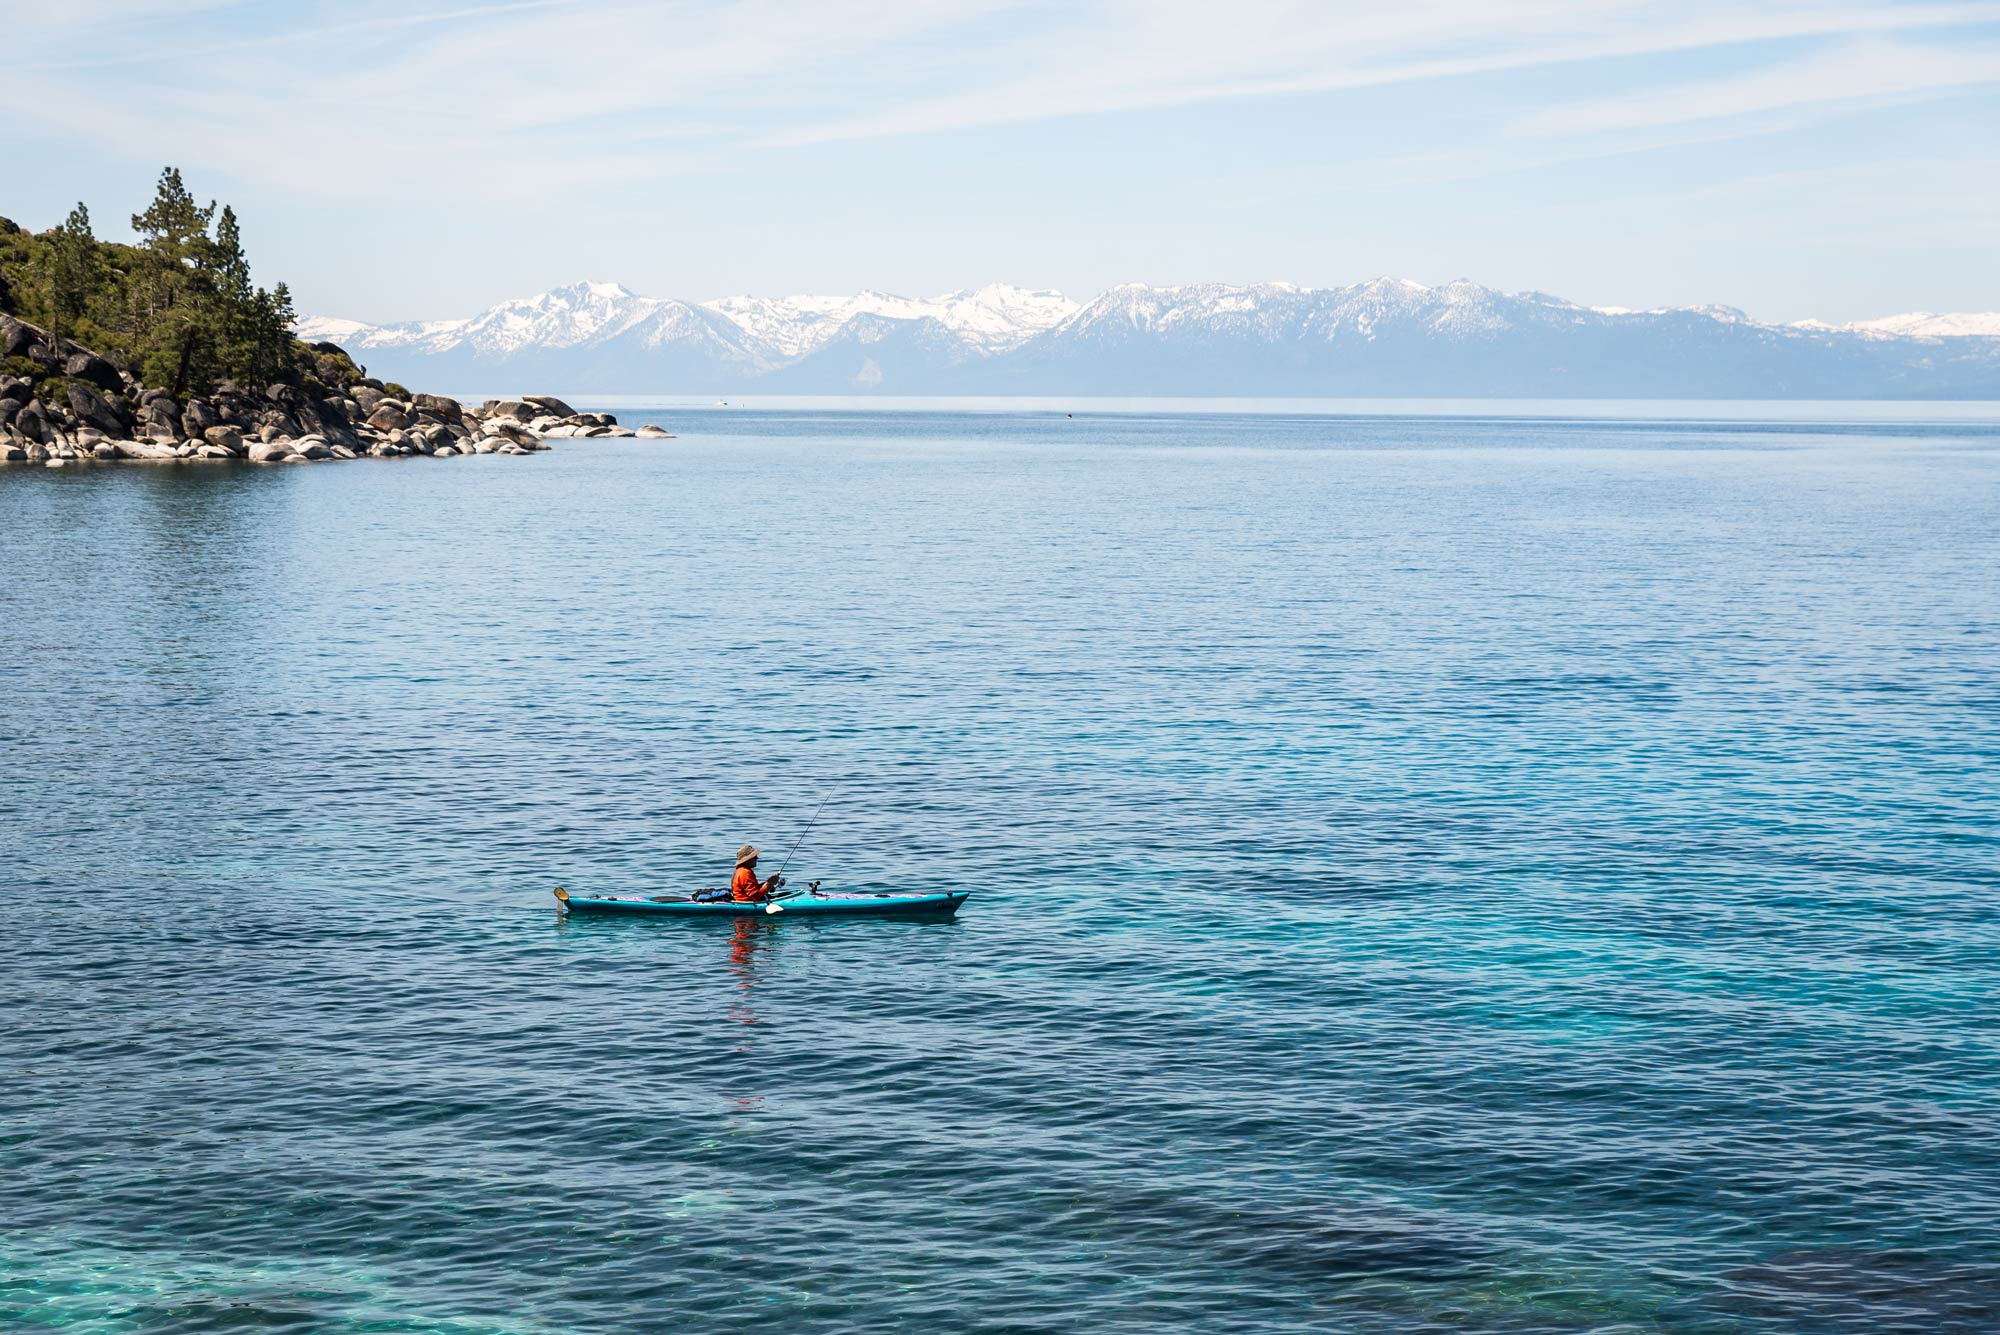 A lone kayak fisherman on Lake Tahoe, with mountains in the background